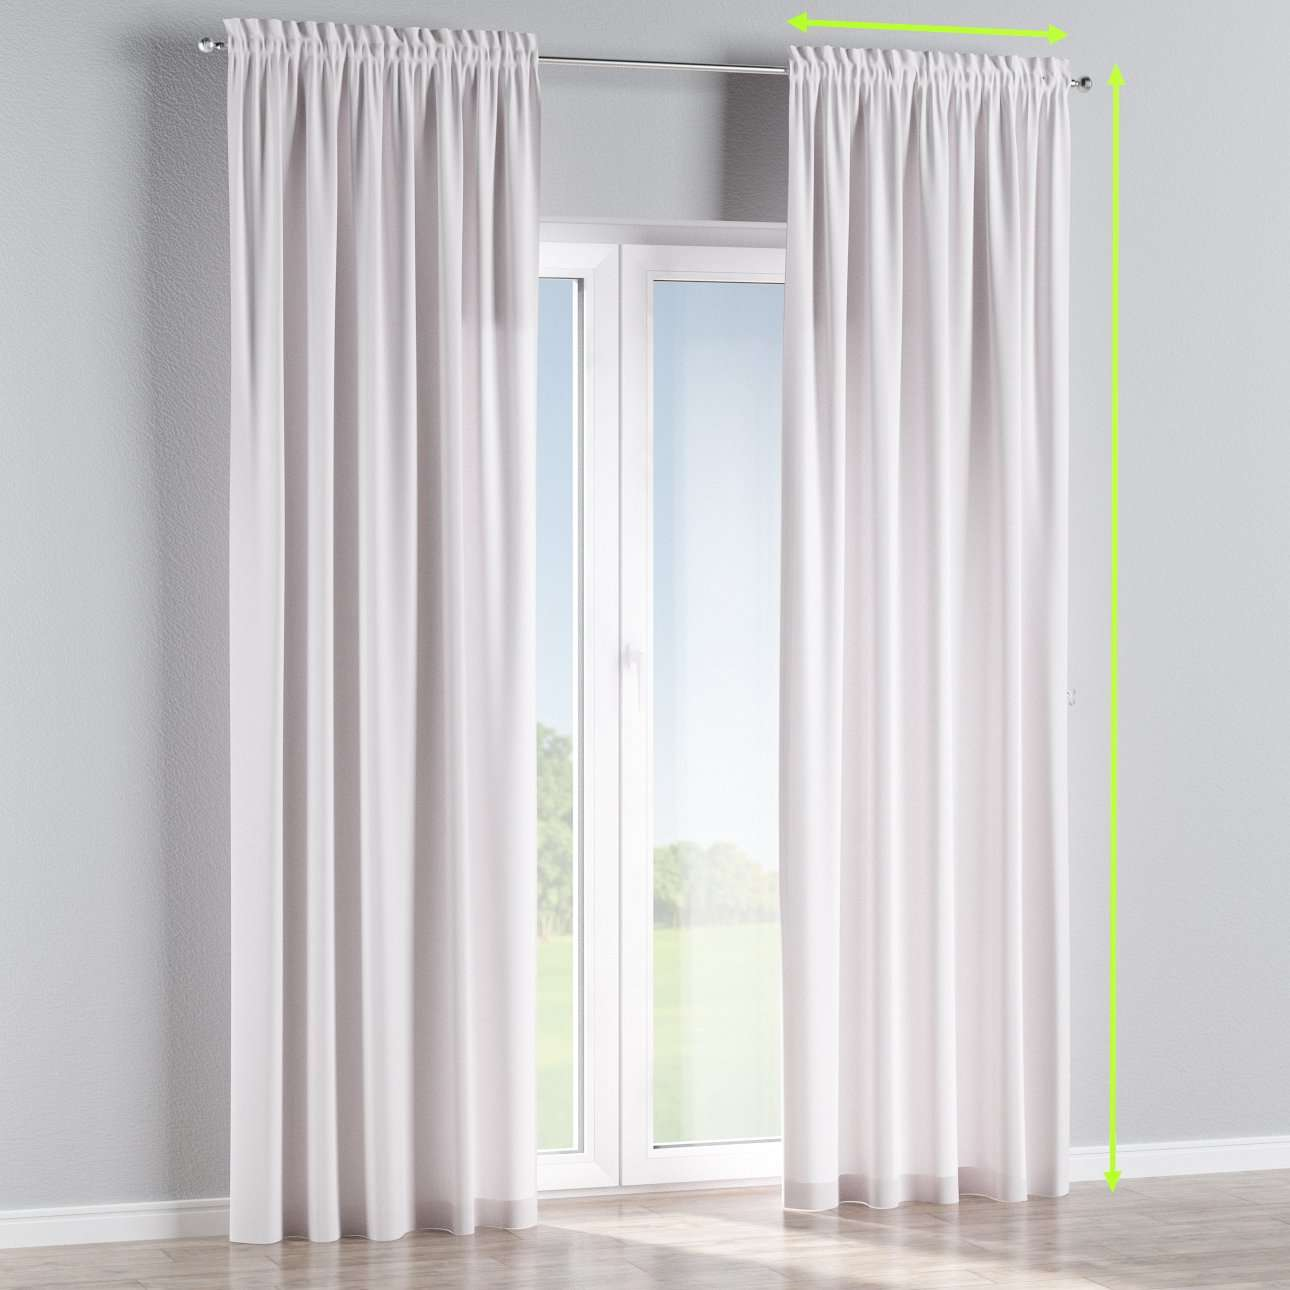 Slot and frill lined curtains in collection Panama Cotton, fabric: 702-34